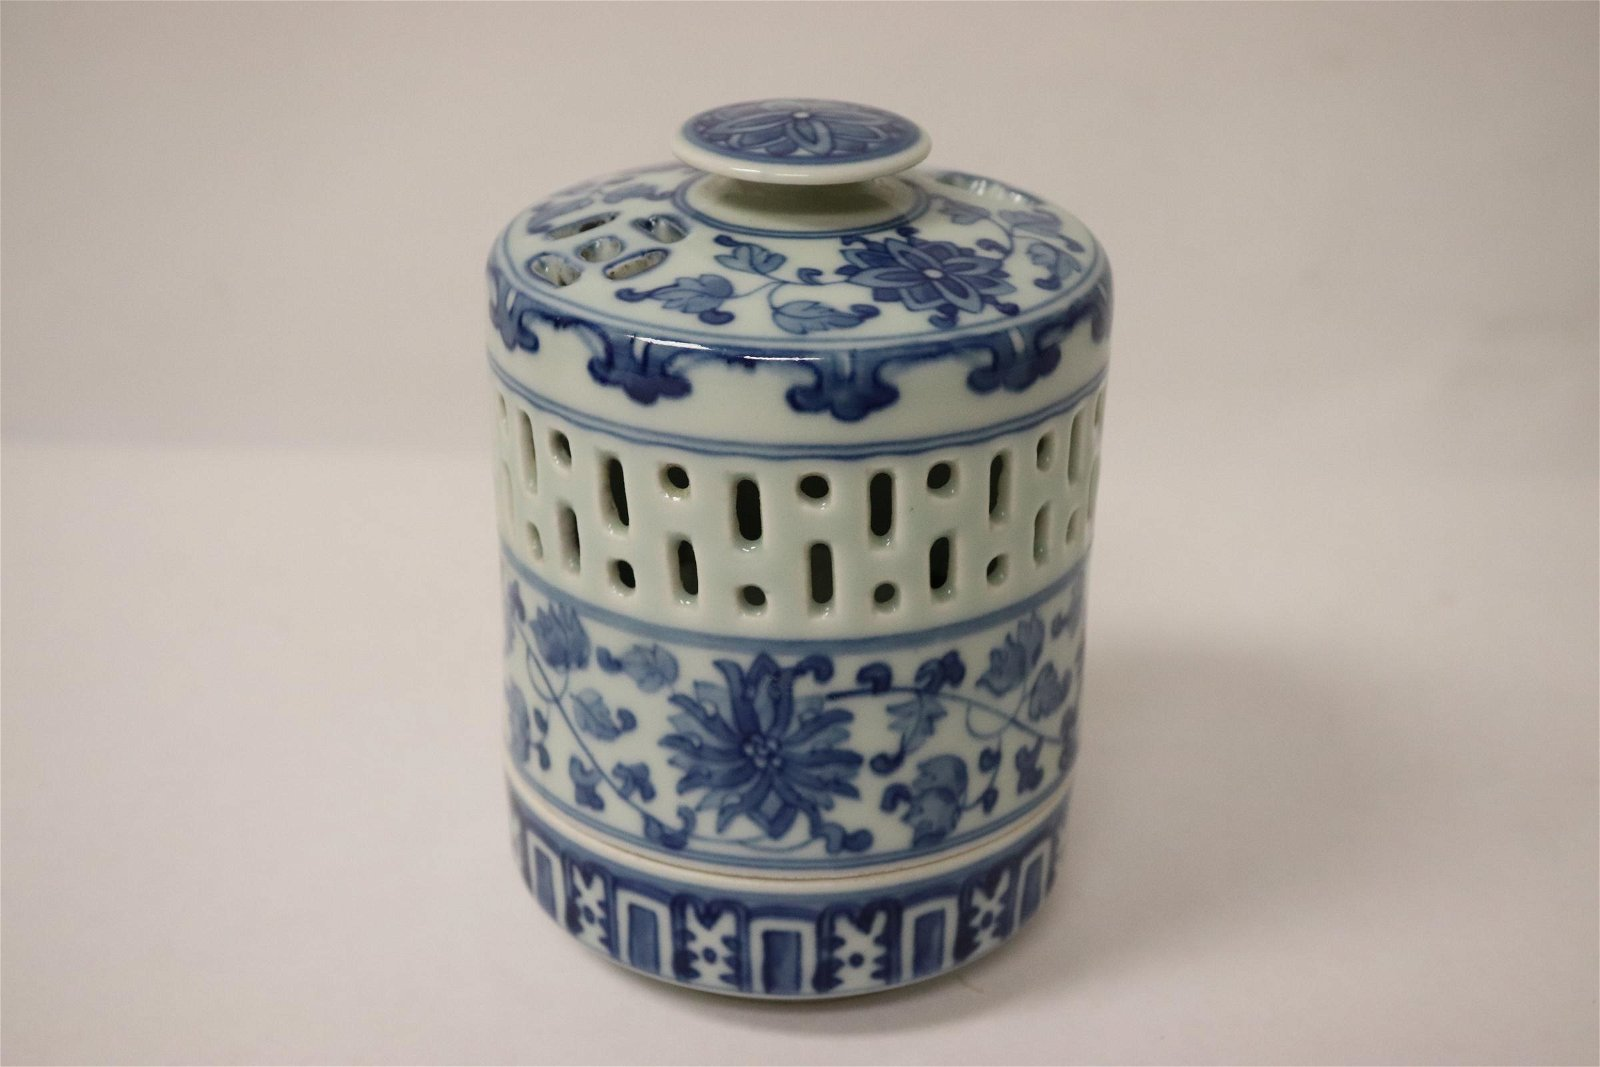 Unusual Chinese blue and white covered censer